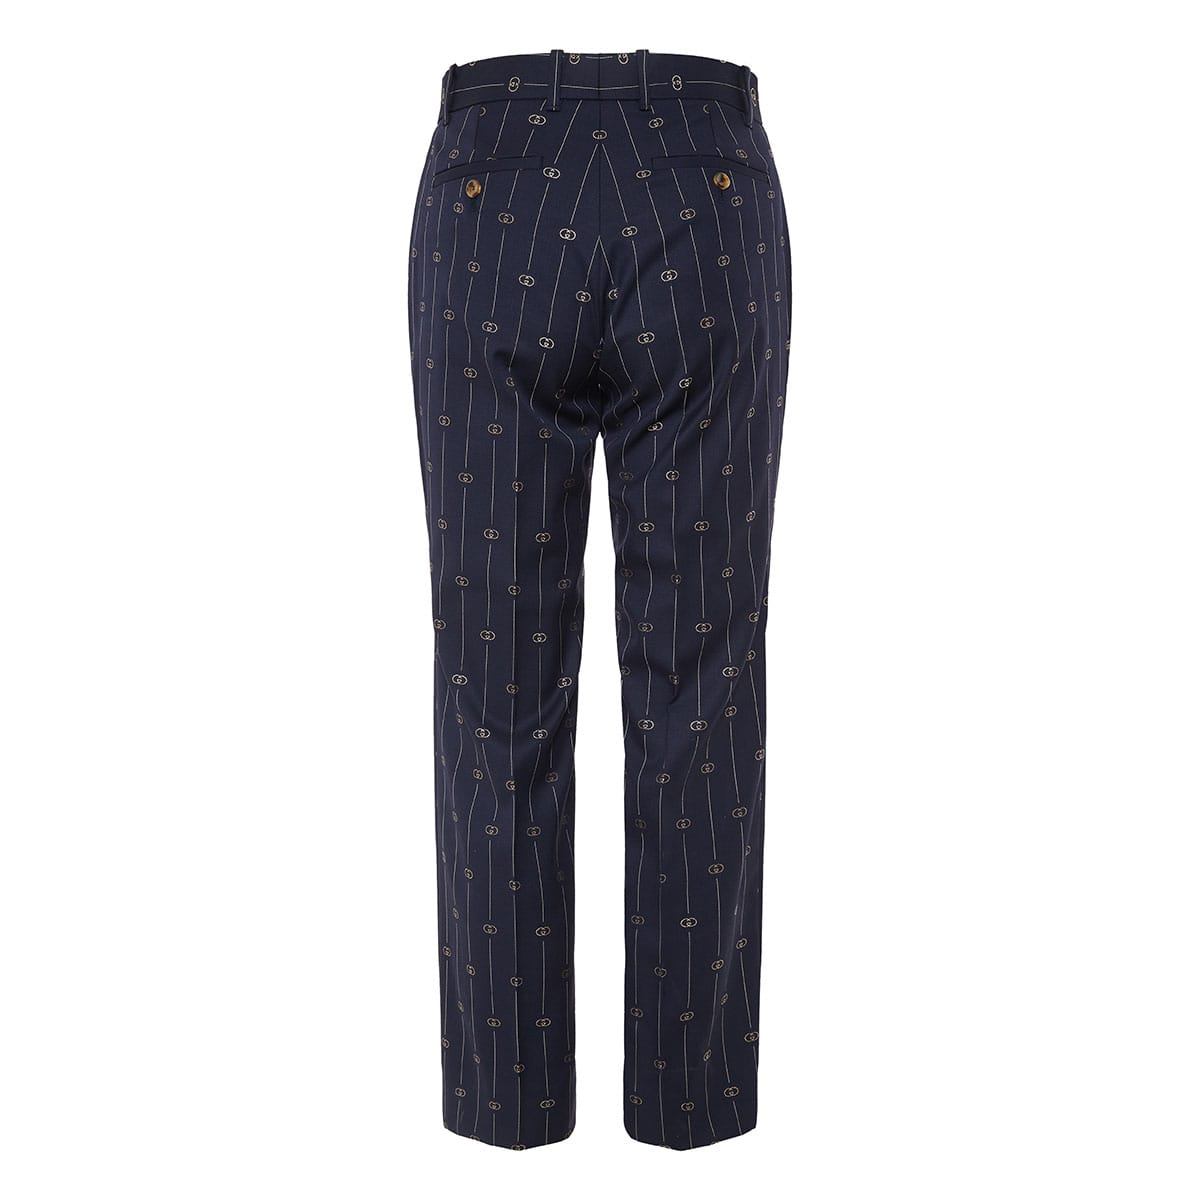 GG wool tailored trousers